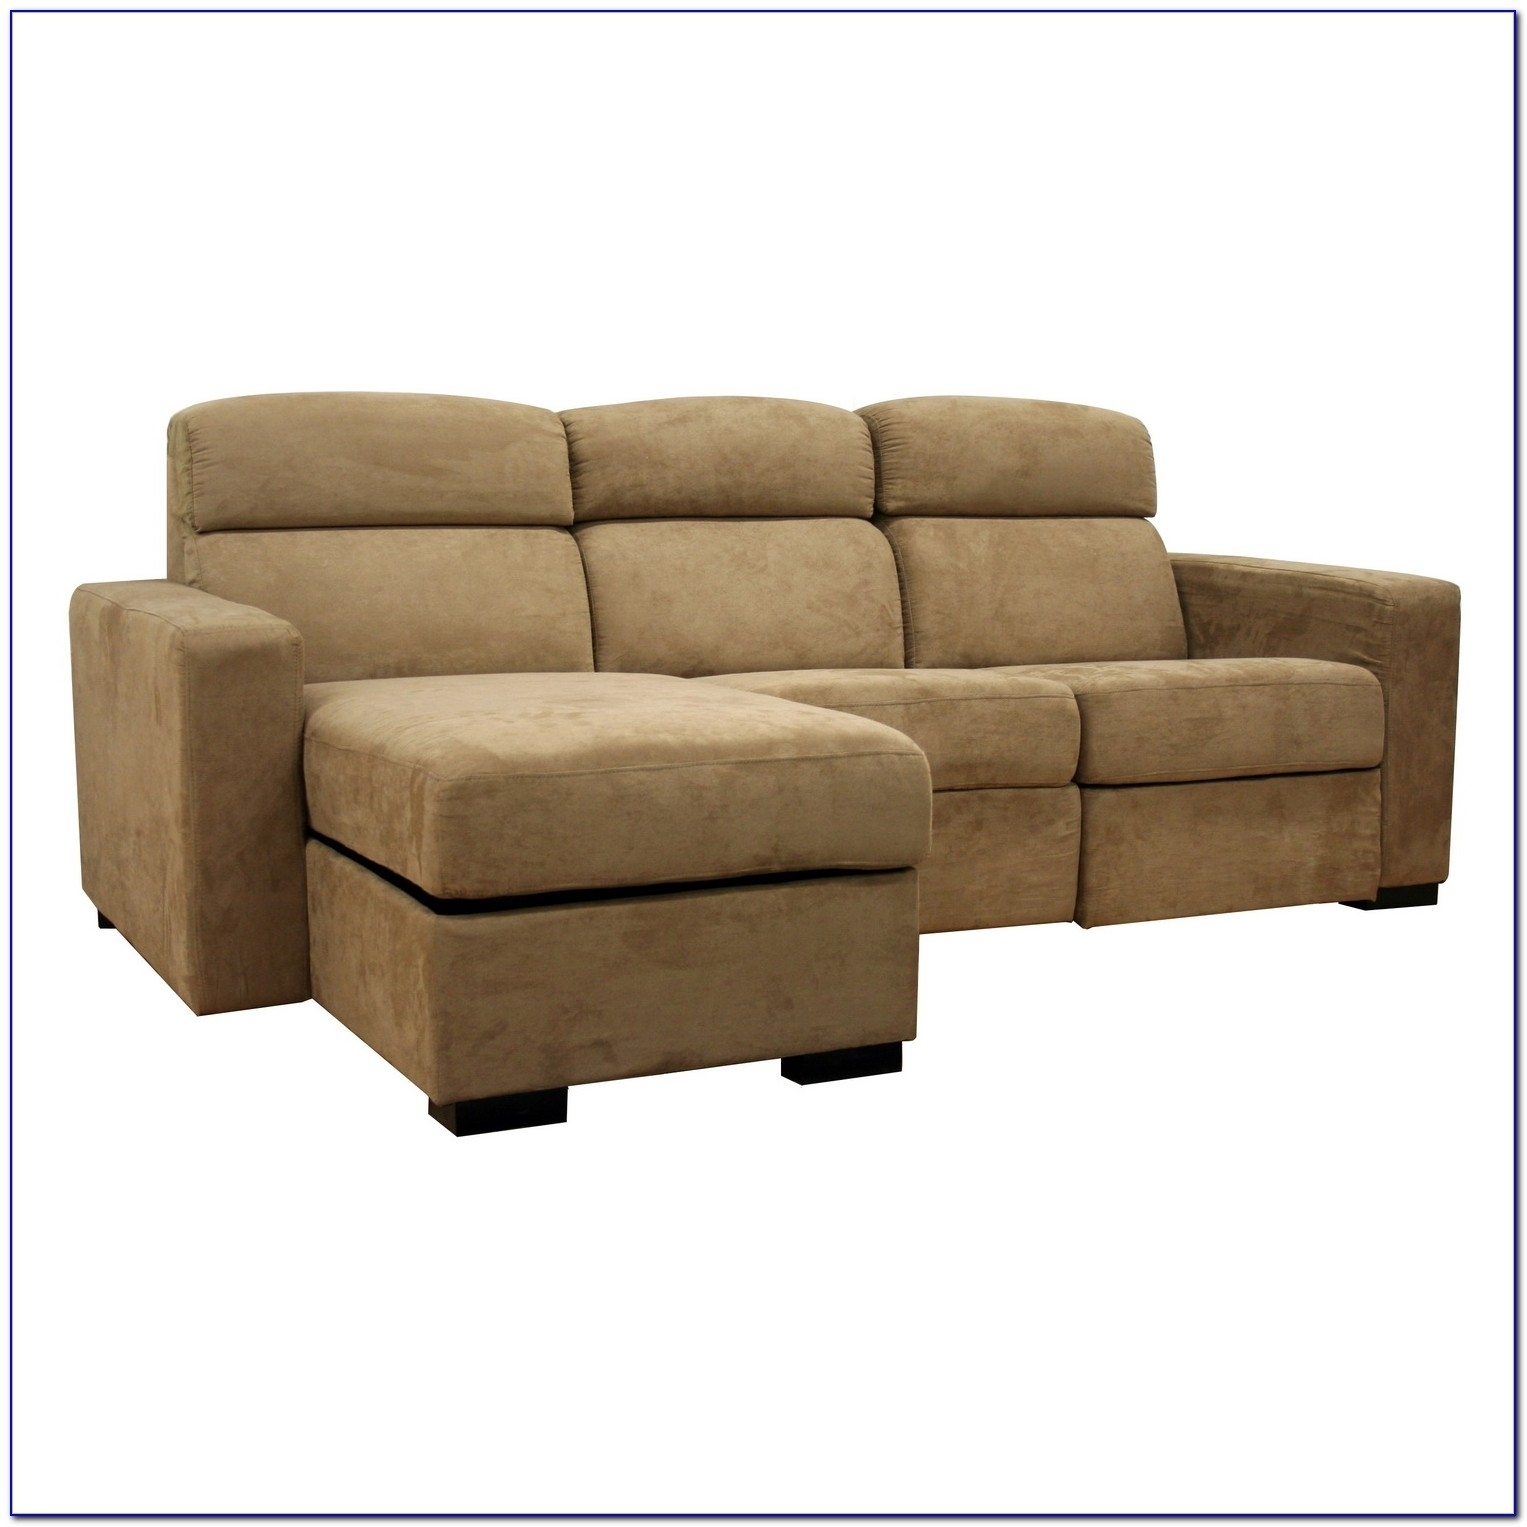 Bowen Sectional Sleeper Sofa With Left Side Chaise Lounge | Http Inside Salt Lake City Sectional Sofas (View 3 of 10)